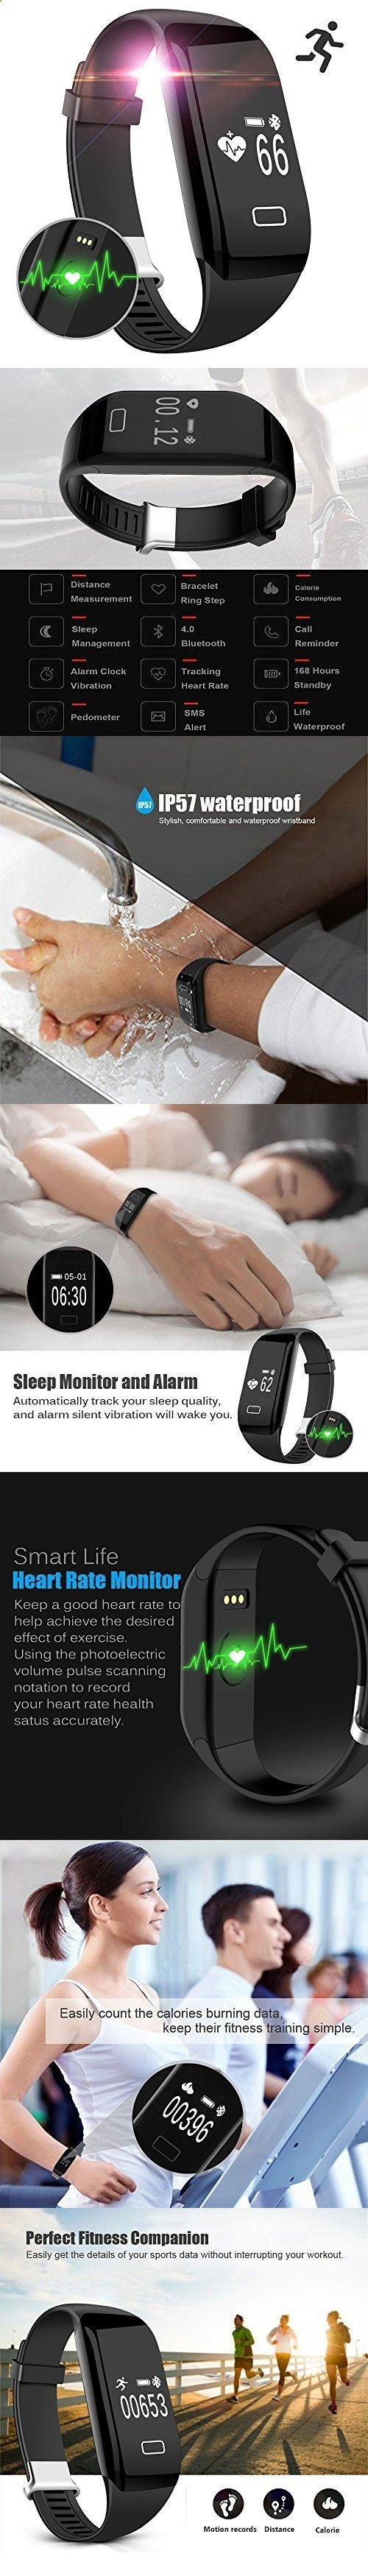 Activity Bracelets Fitness - Activity Bracelets Fitness - Mailiya Fitness Tracker Watch Heart Rate Monitor Activity Wristband Pedometer Sleep Monitor Smart Bracelet Calories Track Step Track Health Band Waterproof Smart Watch for iPhone Android phones - The benefits of wearing these smart bracelets are not only in your comfort, but also in that they are able to control all your physical progress - The benefits of wearing these smart bracelets are not only in your comfort, but also in t...